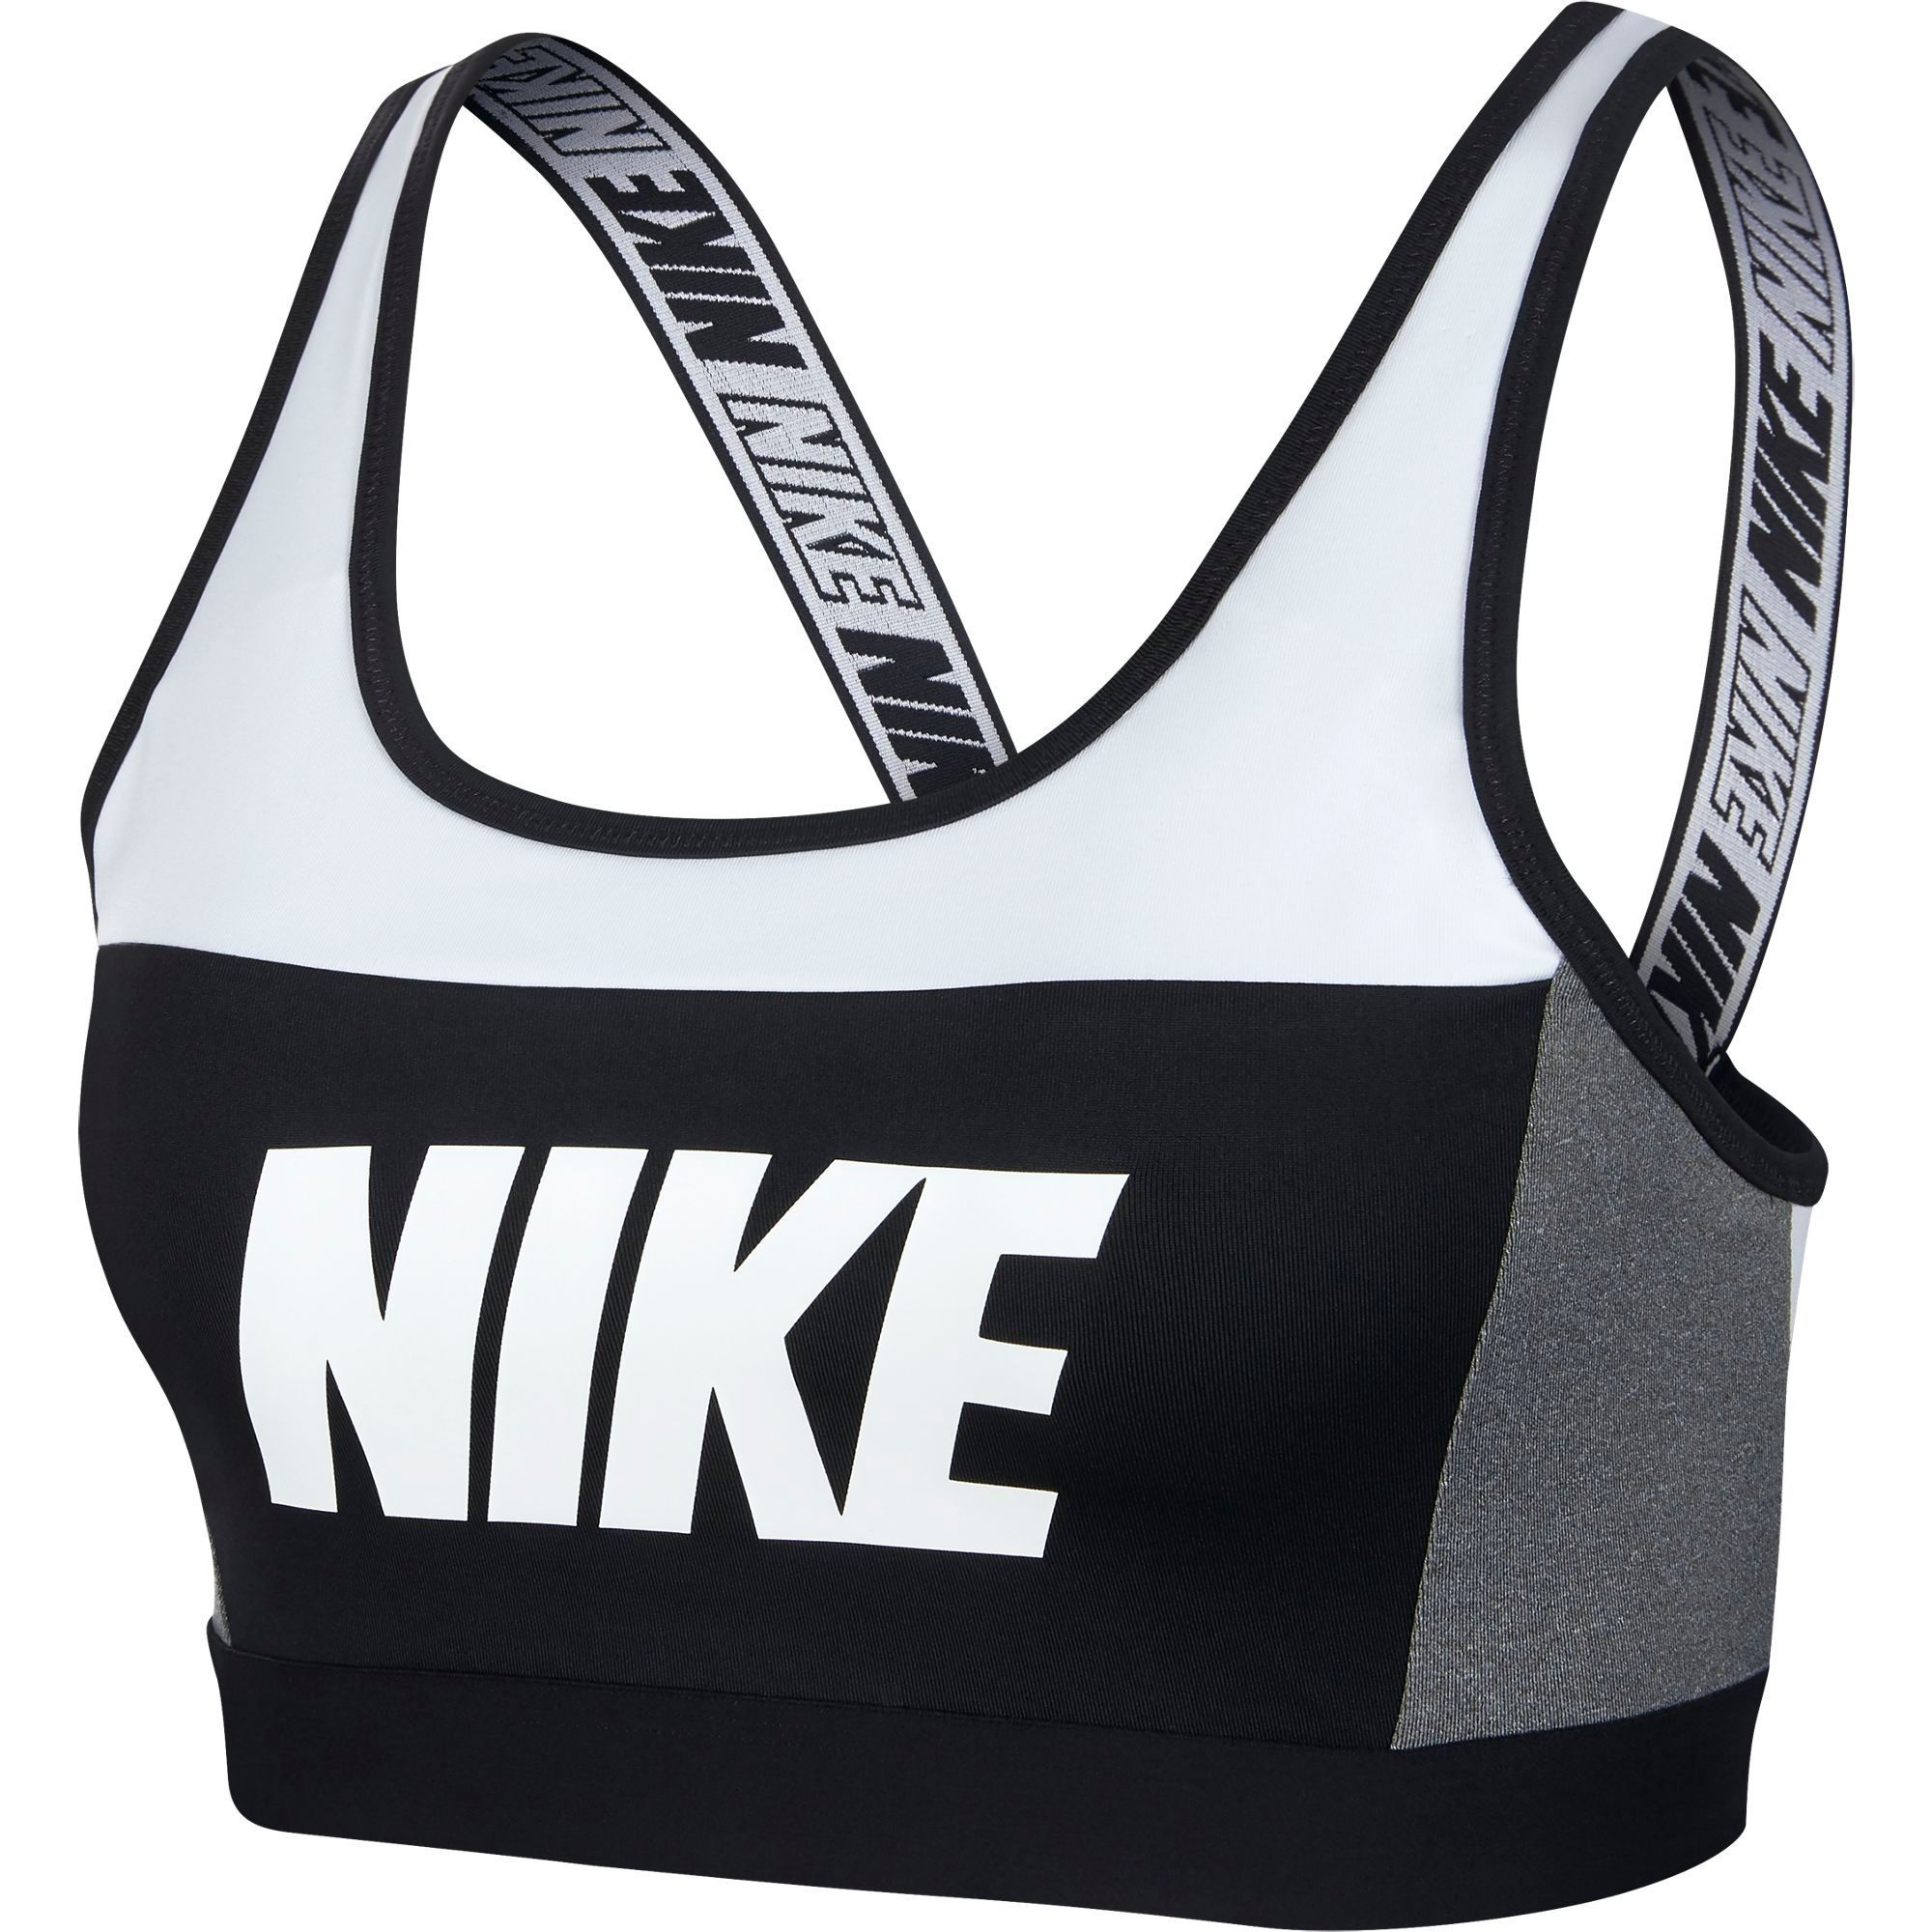 24b079d1a00dc Nike Women s Distort Classic Medium Support Sports Bra in 2019 ...